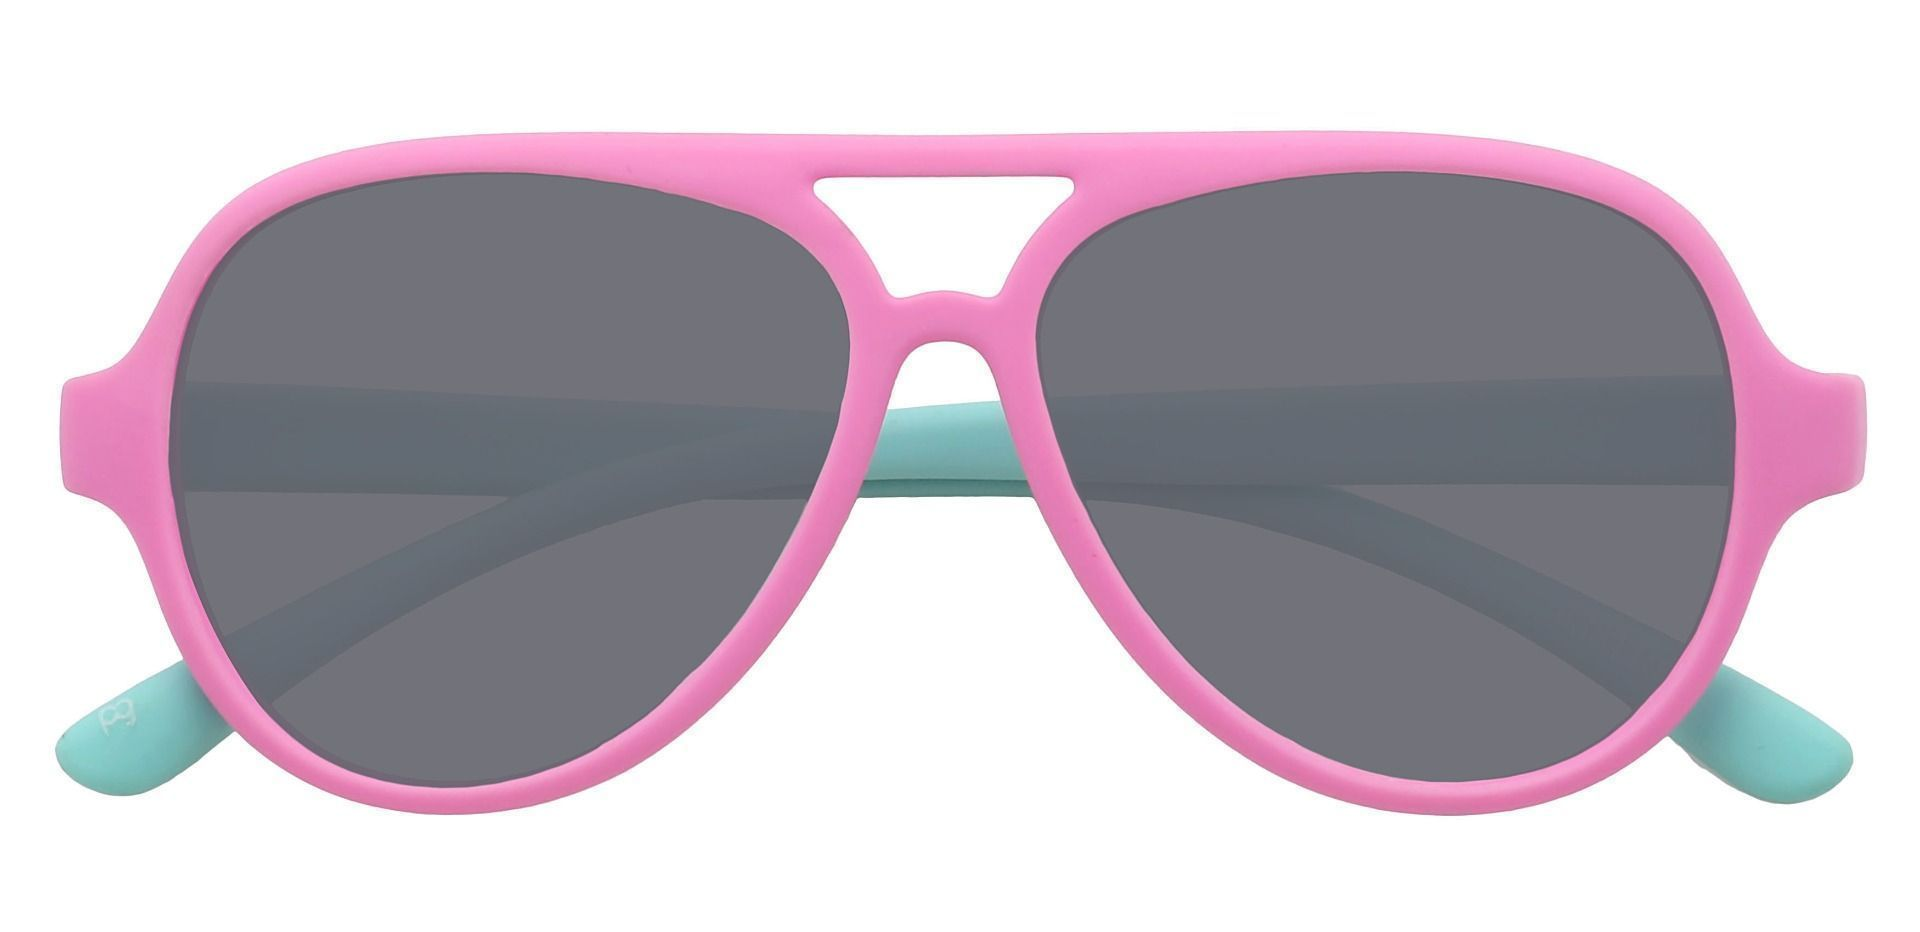 Rookie Aviator Single Vision Sunglasses - Pink Frame With Gray Lenses